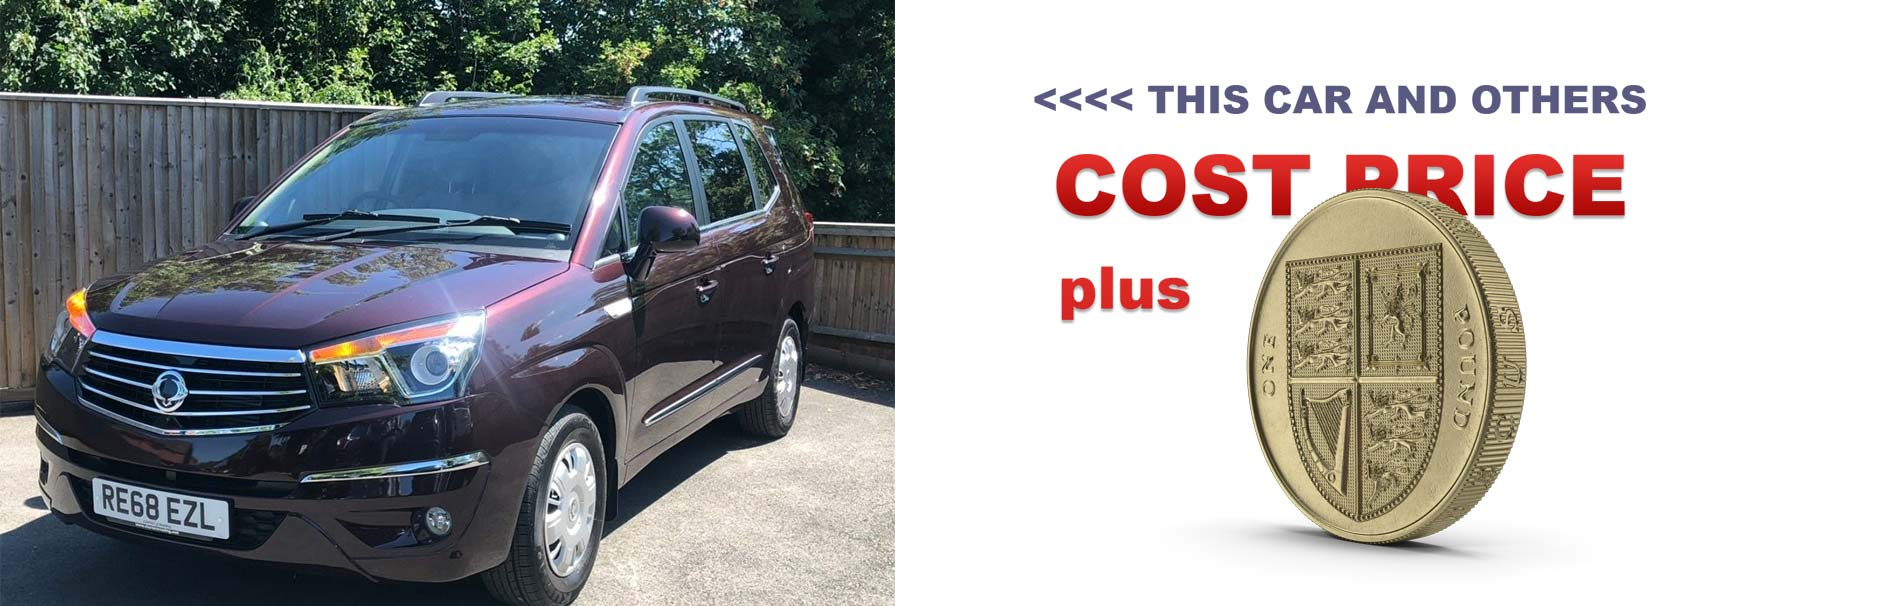 ssangyong-cars-at-cost-price-plus-a-pound-sli